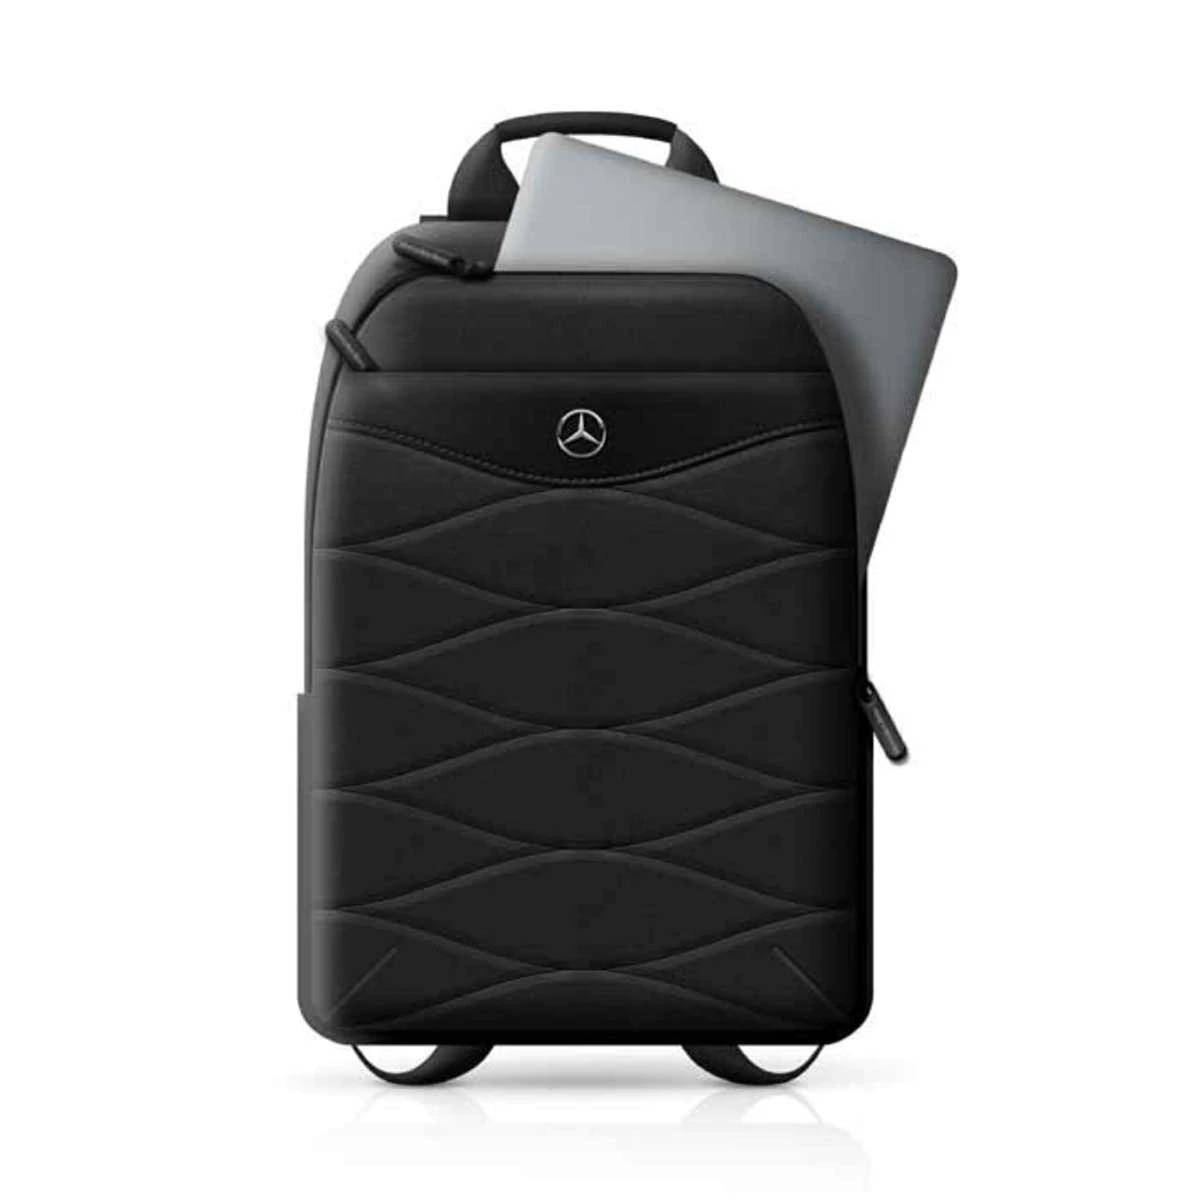 Mercedes-Benz Backpack for laptops up to 15.6 inches (black)